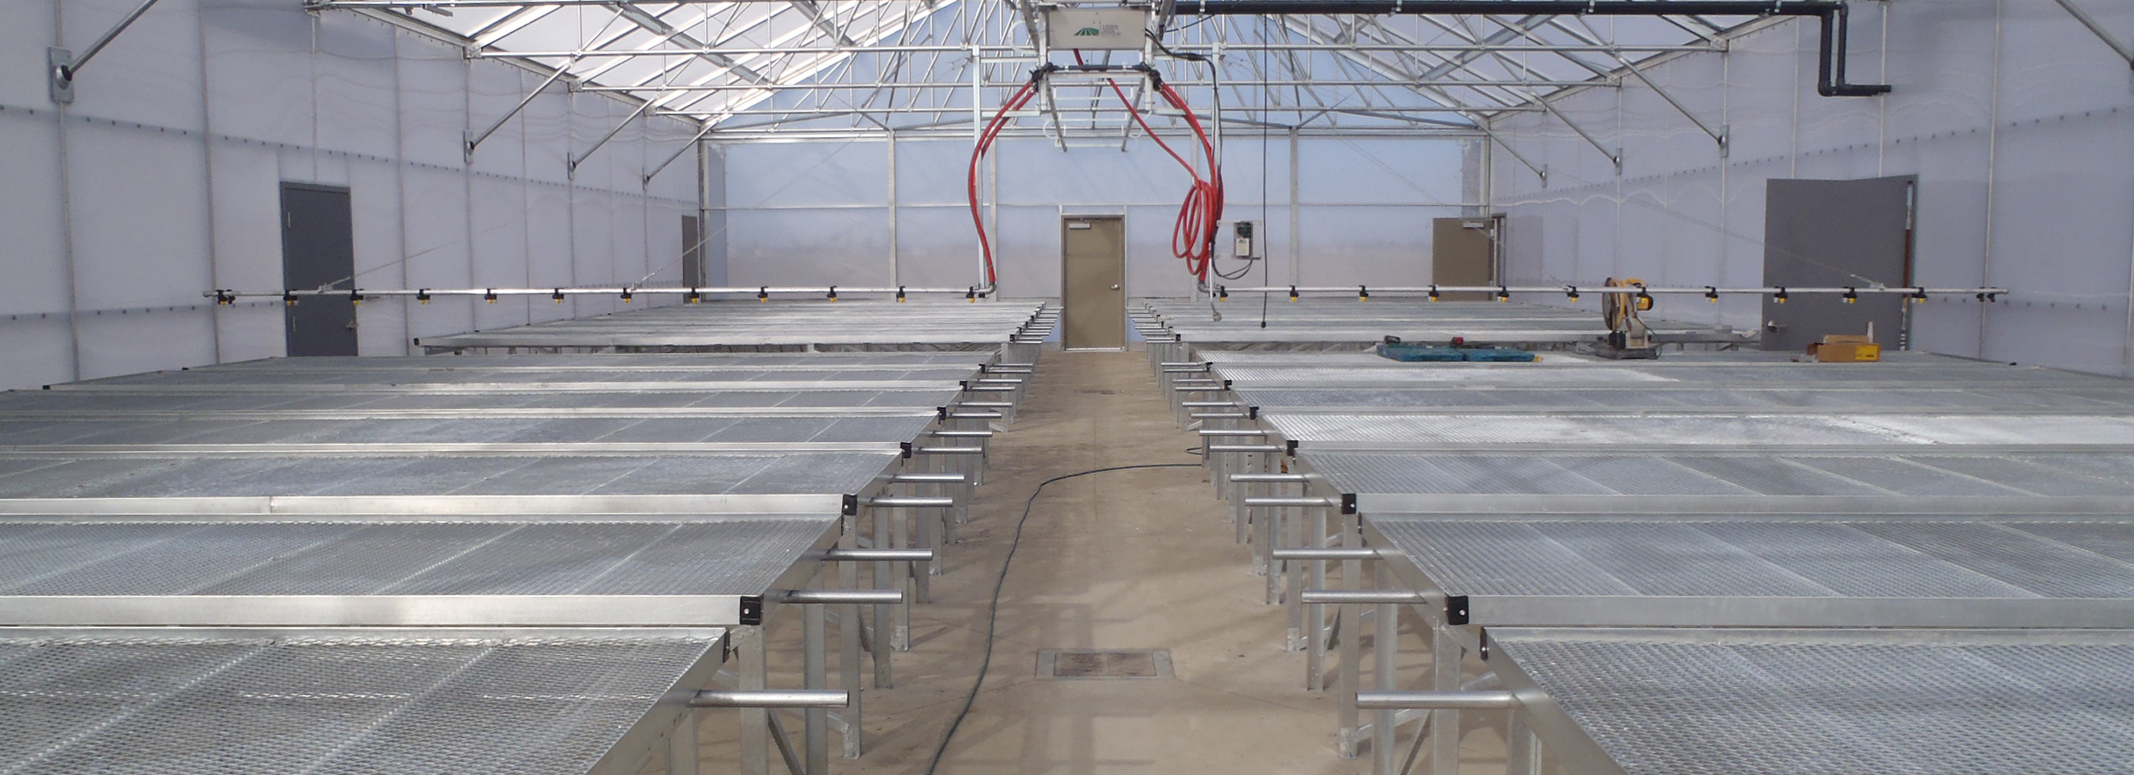 35 North Provides Project and Construction Management Services to Syngenta for the Greenhouse Expansion in Woodland, CA